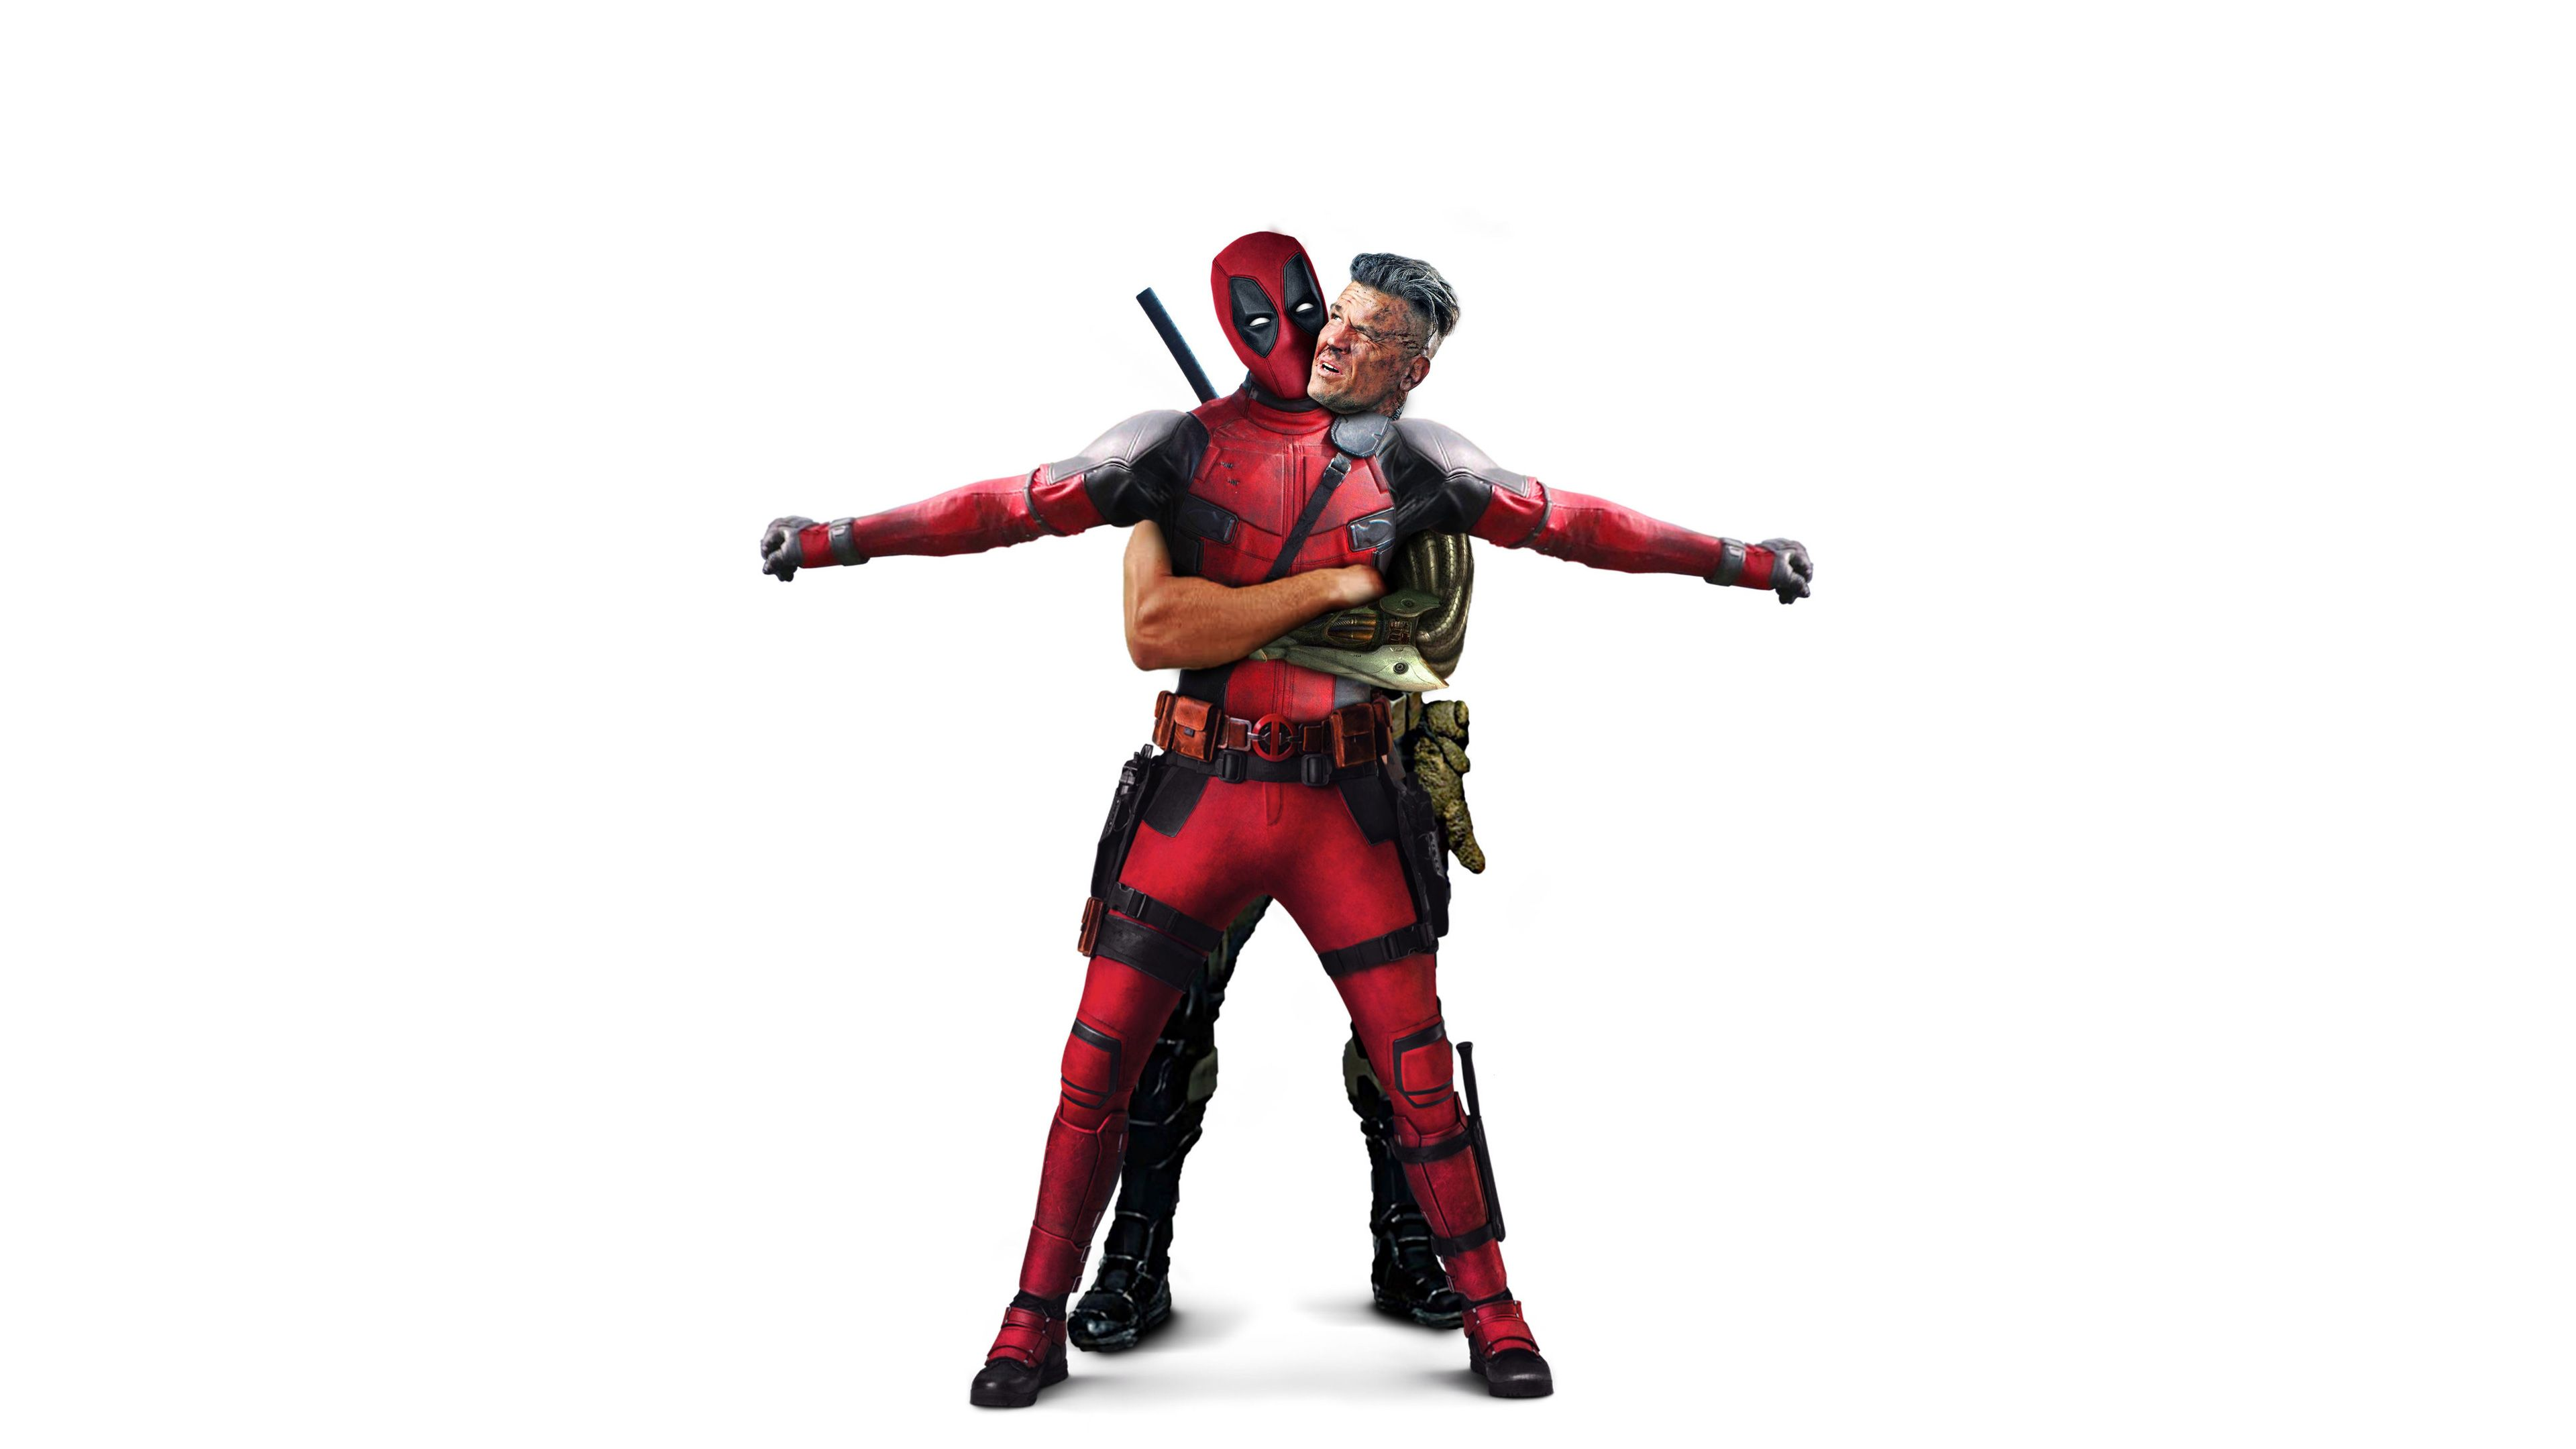 3840x2160 Deadpool 2 Movie 4k, HD Movies, 4k Wallpapers, Images, Backgrounds ...